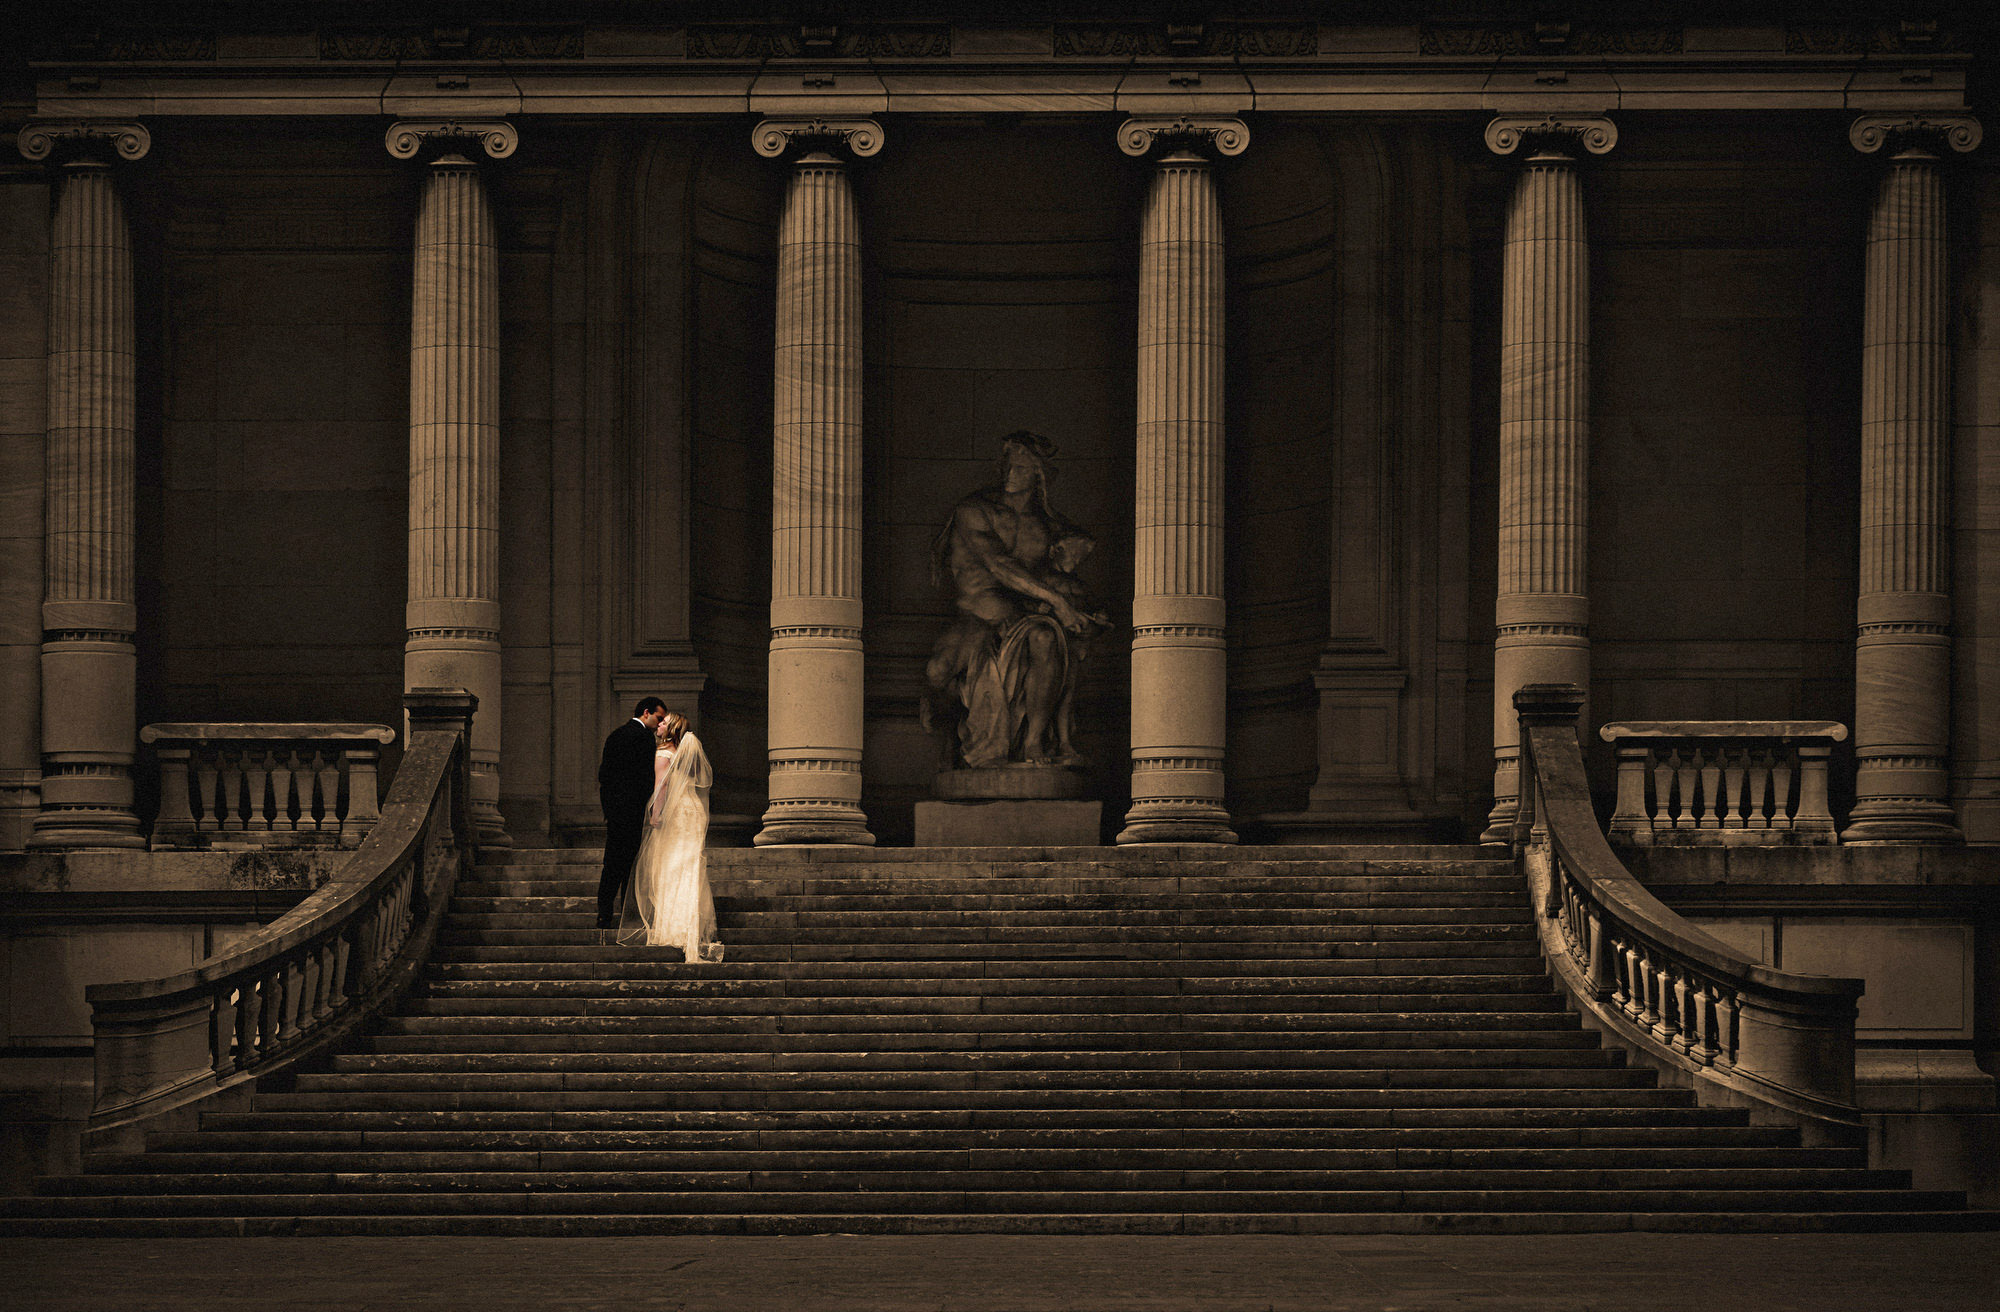 Wedding couple on staircase with columns - photo by Jerry Ghionis